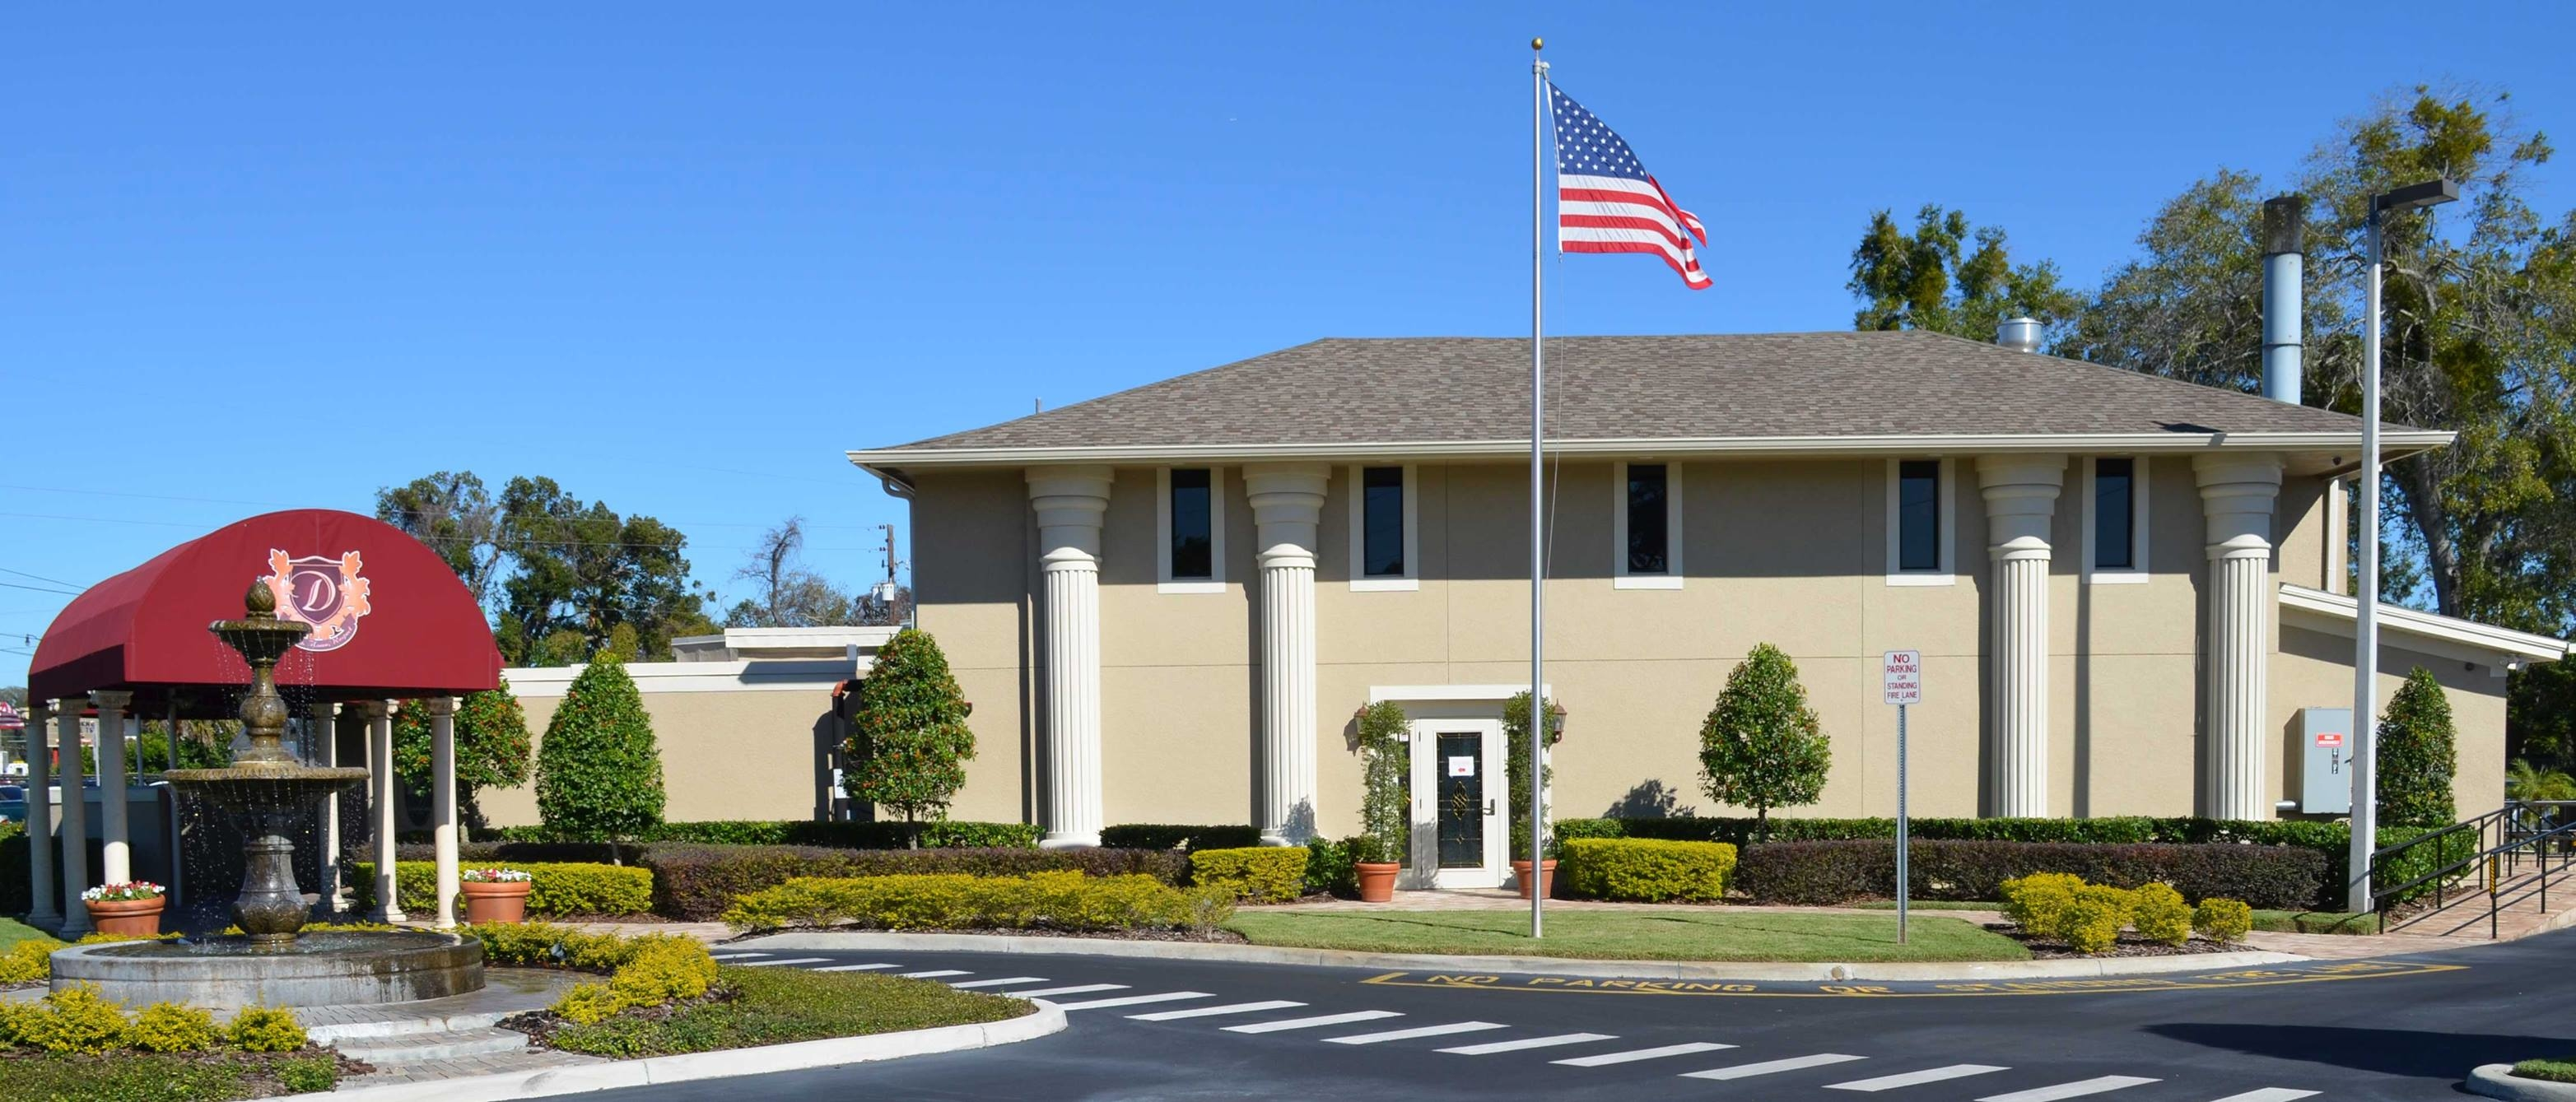 DeGusipe Funeral Home and Crematory image 0